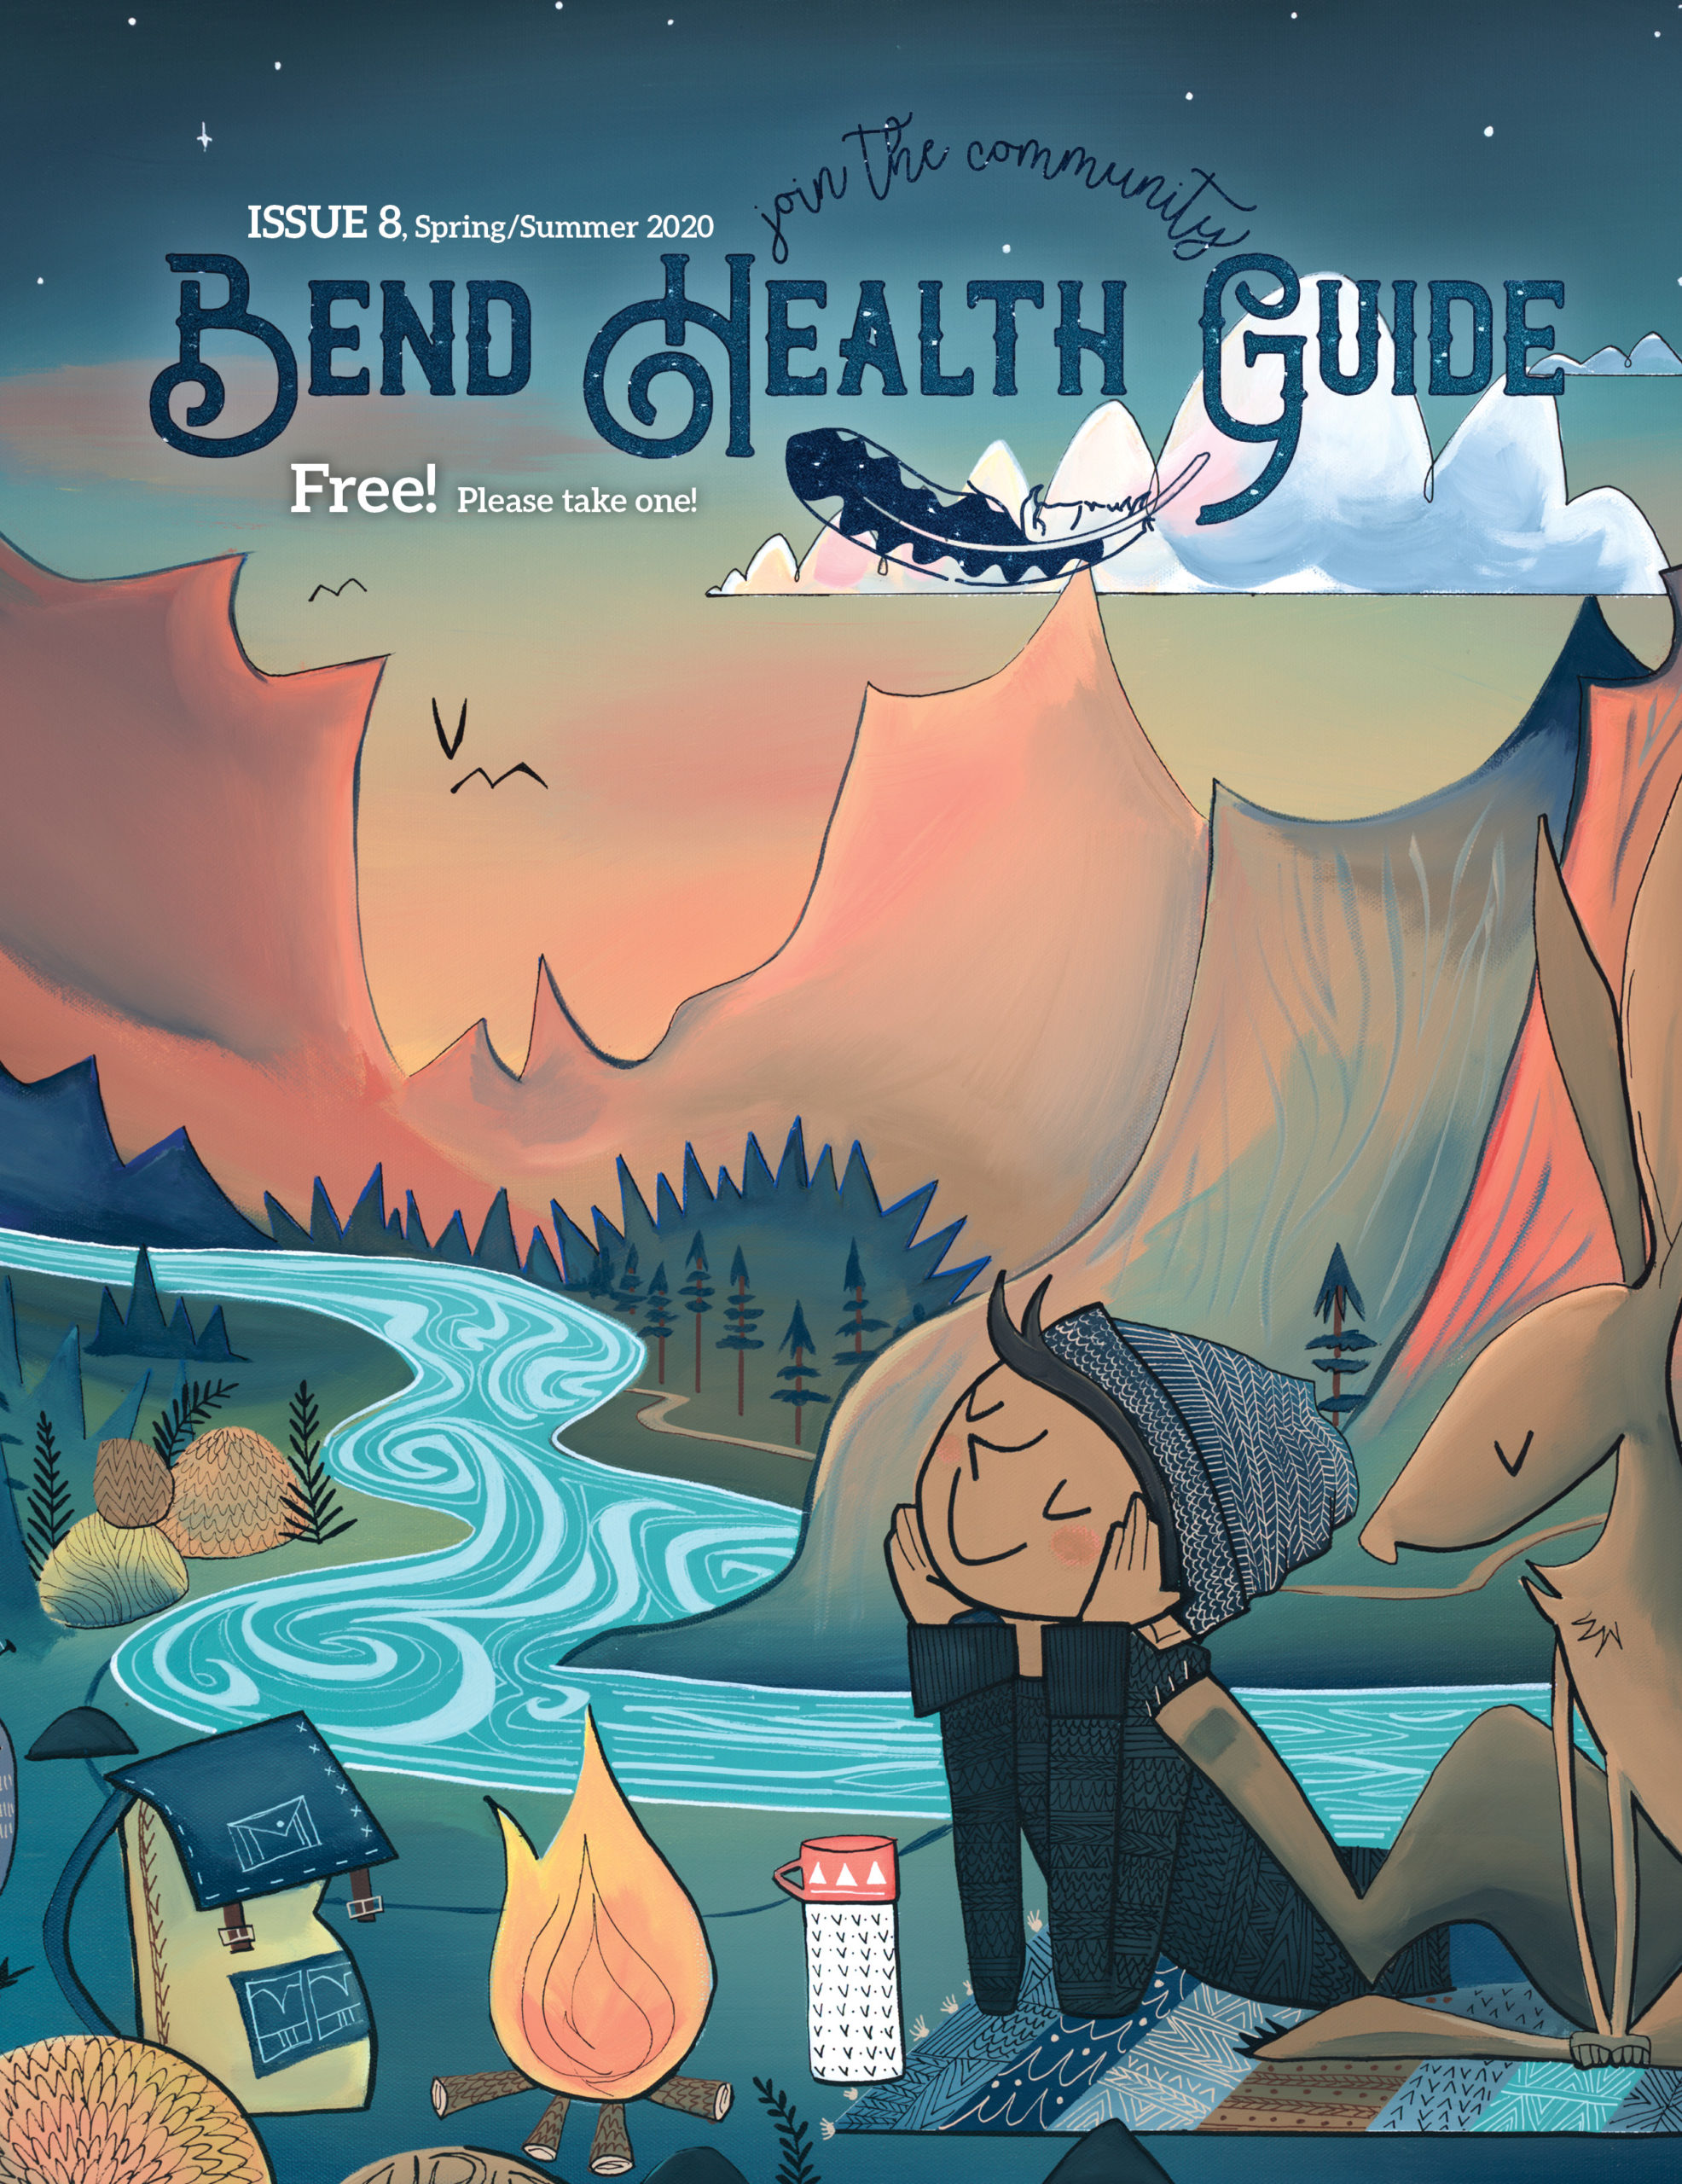 Bend Health Guide Spring 2020